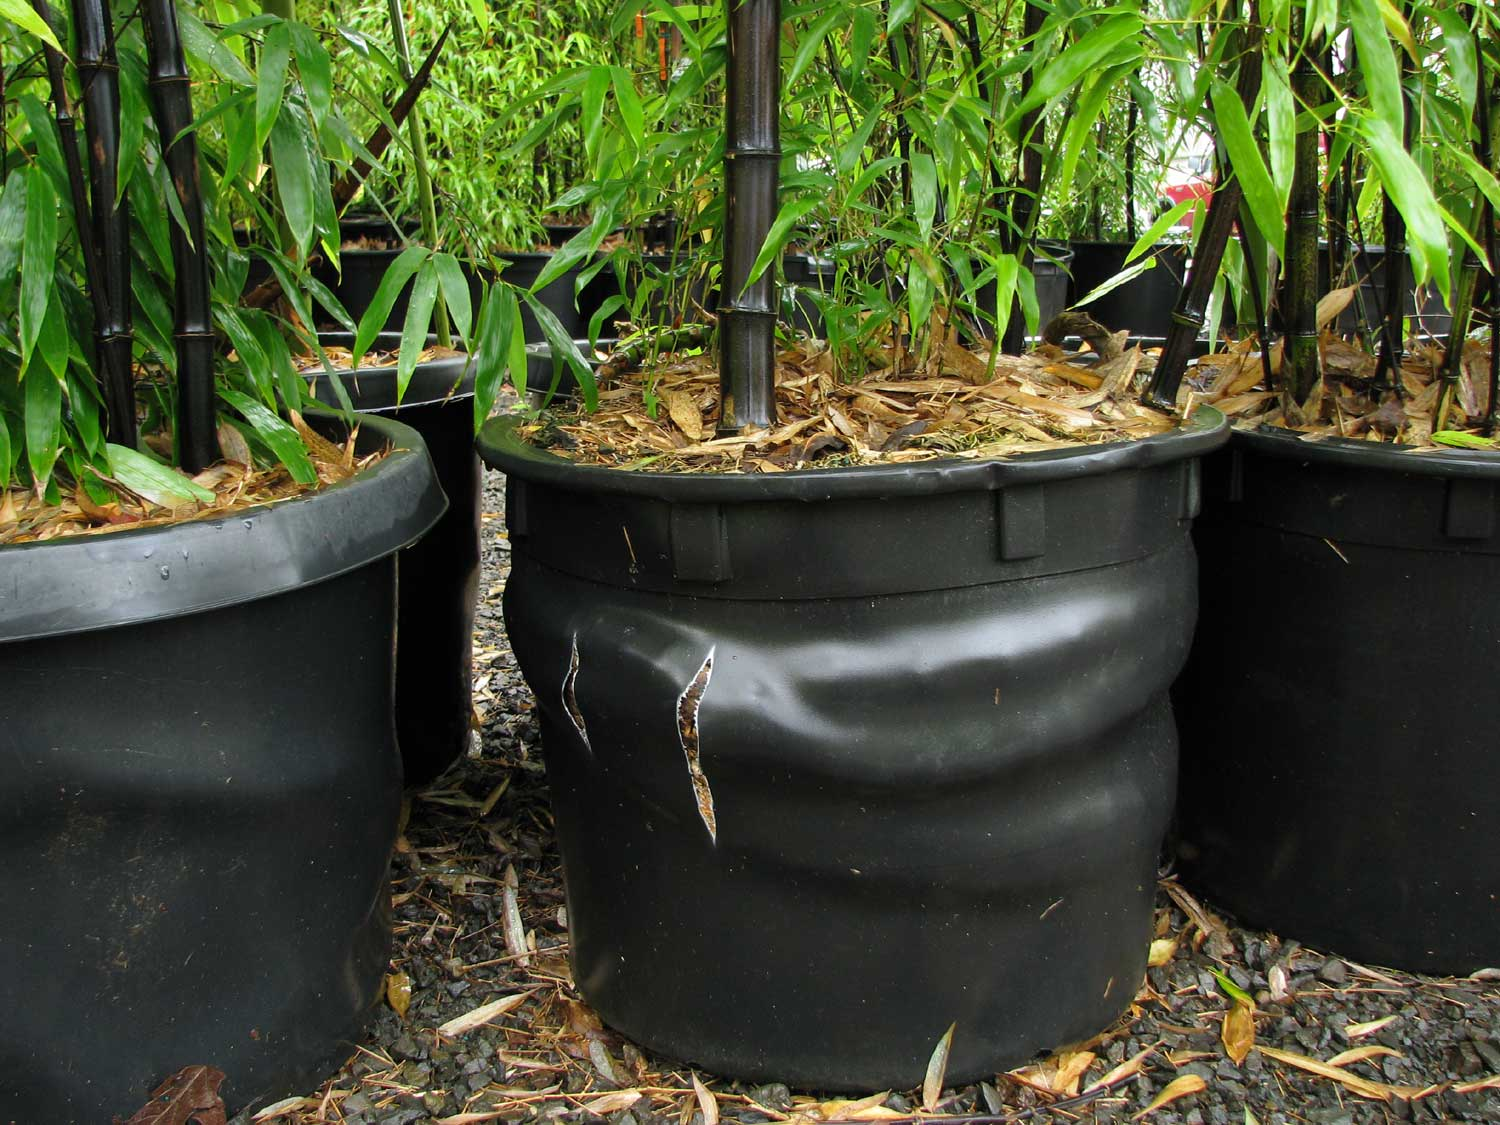 How to plant bamboo in pot